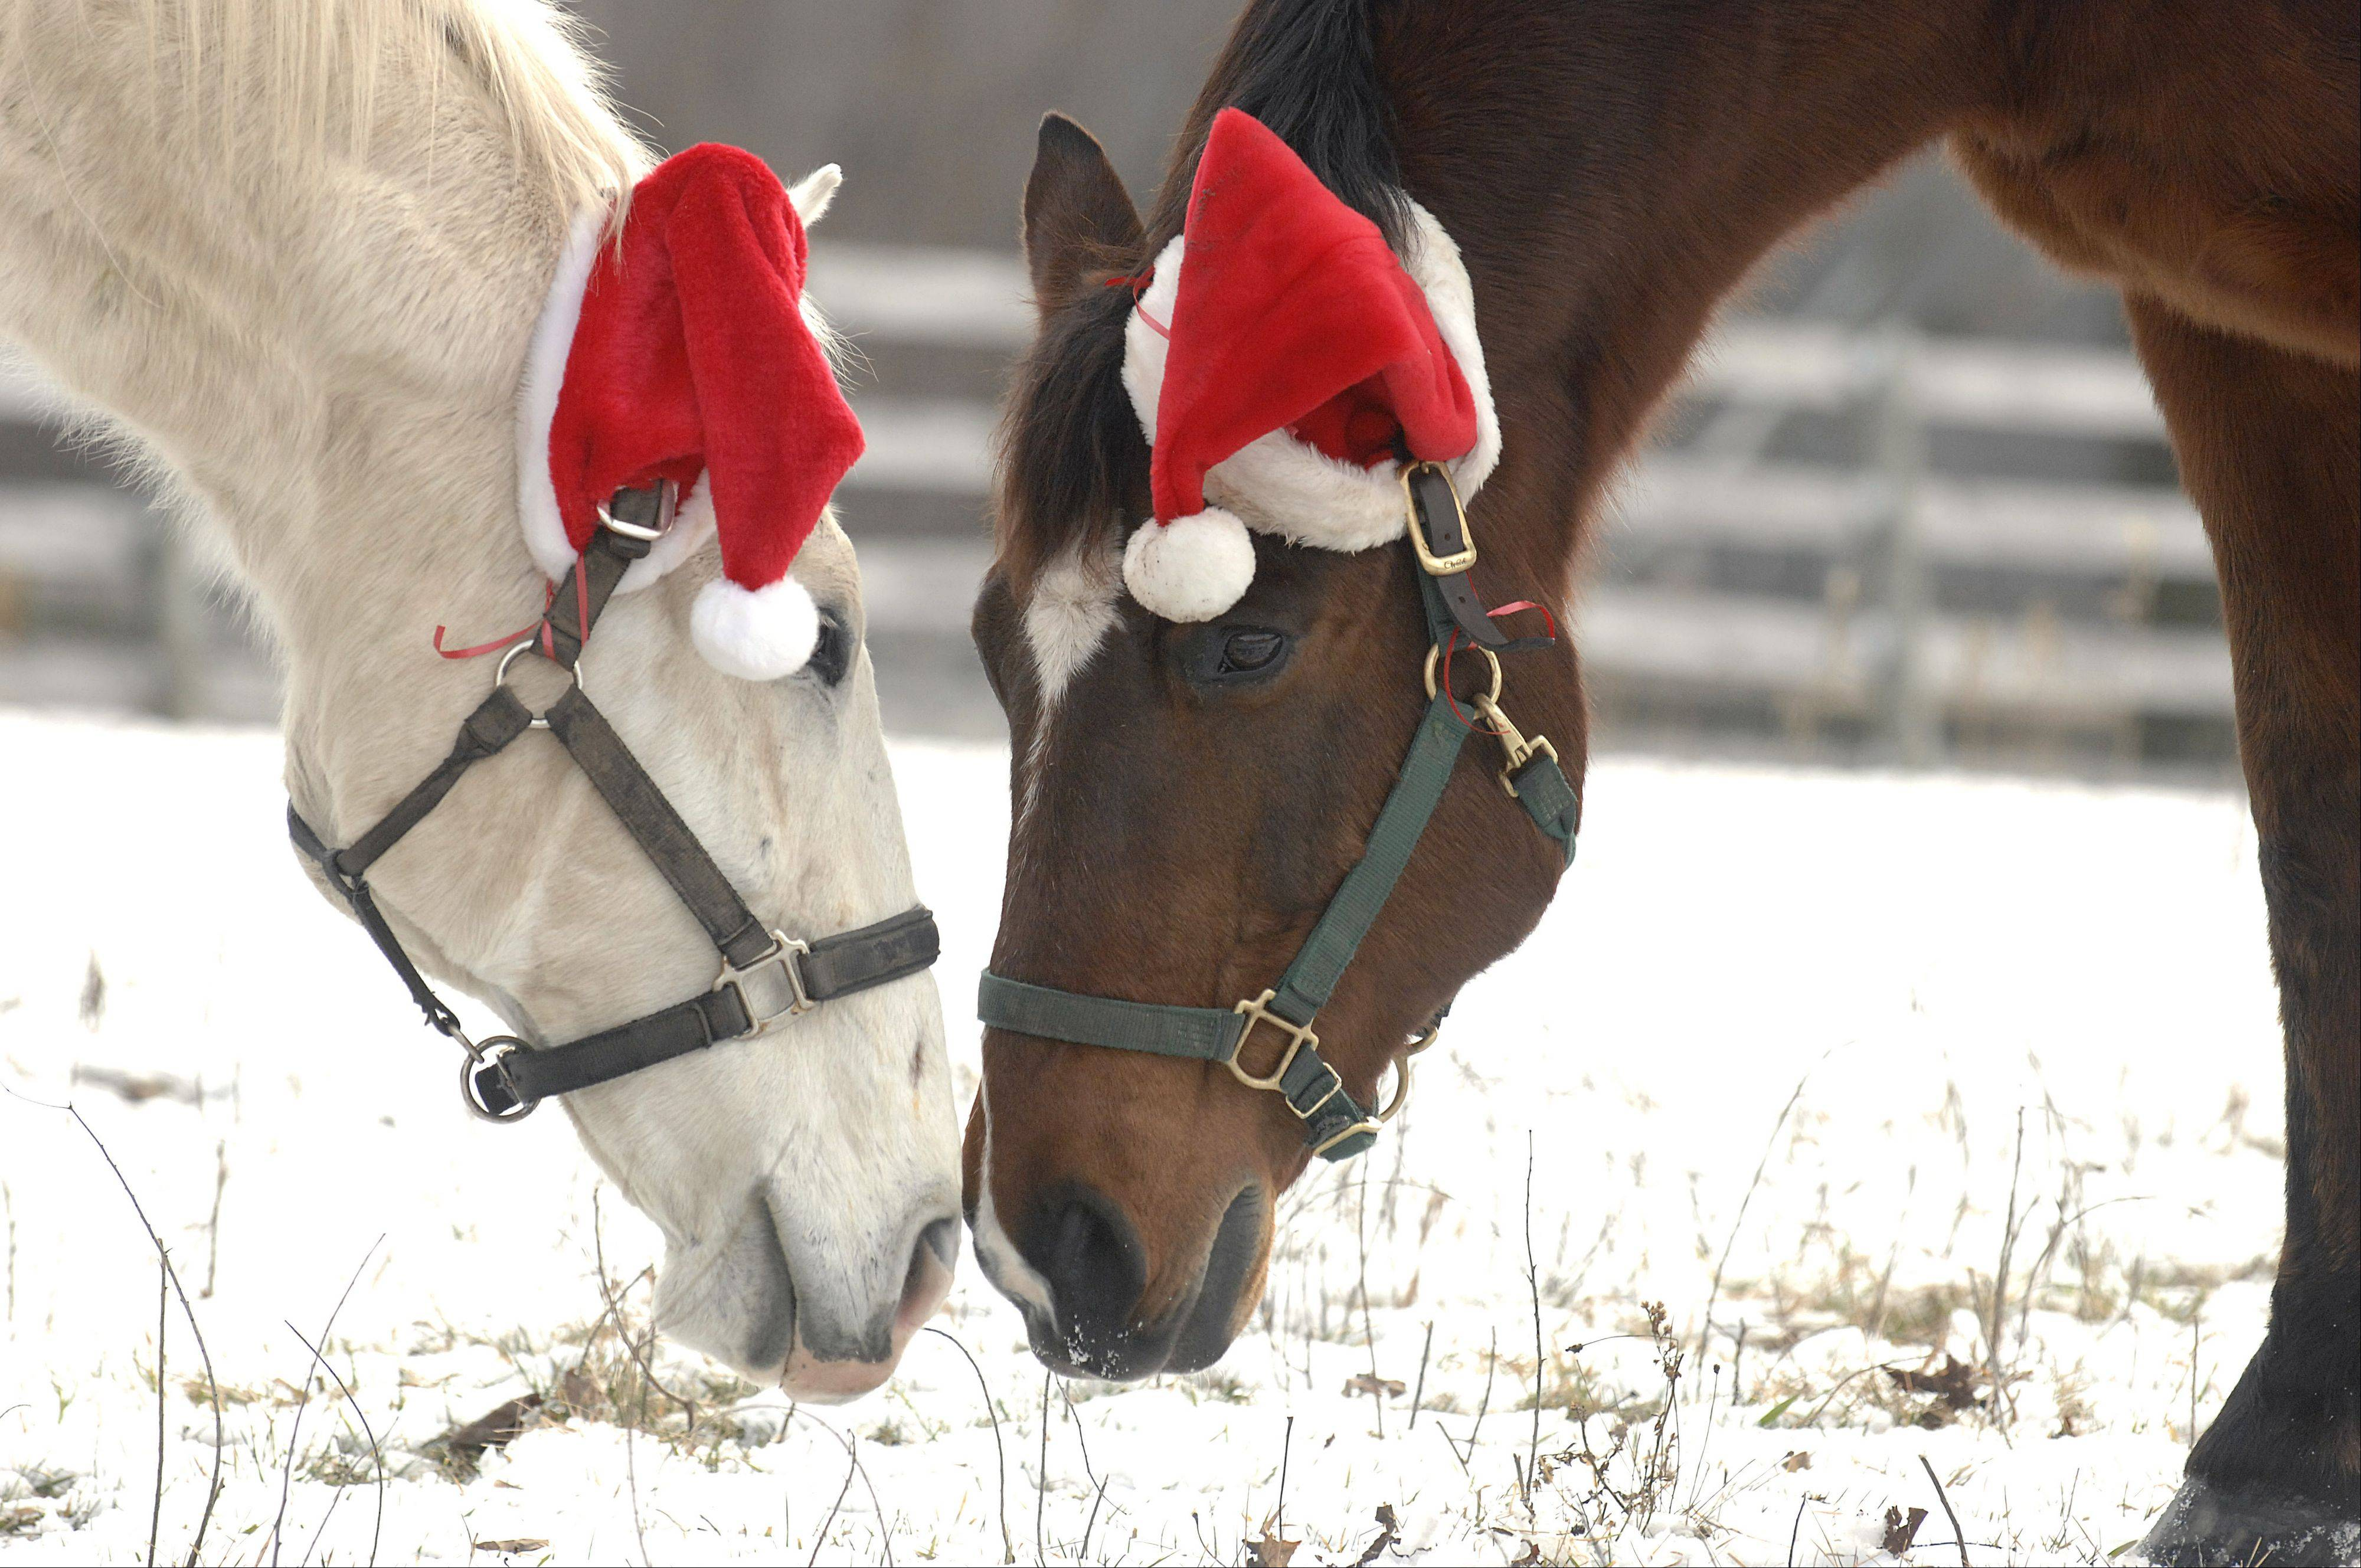 Two horse wearing Santa hats nuzzle at a private barn called Canterfield Farm in West Dundee on Christmas Day. This is the eighth year the horses have worn the hats. Many drivers stop along Route 31 to look and take pictures.